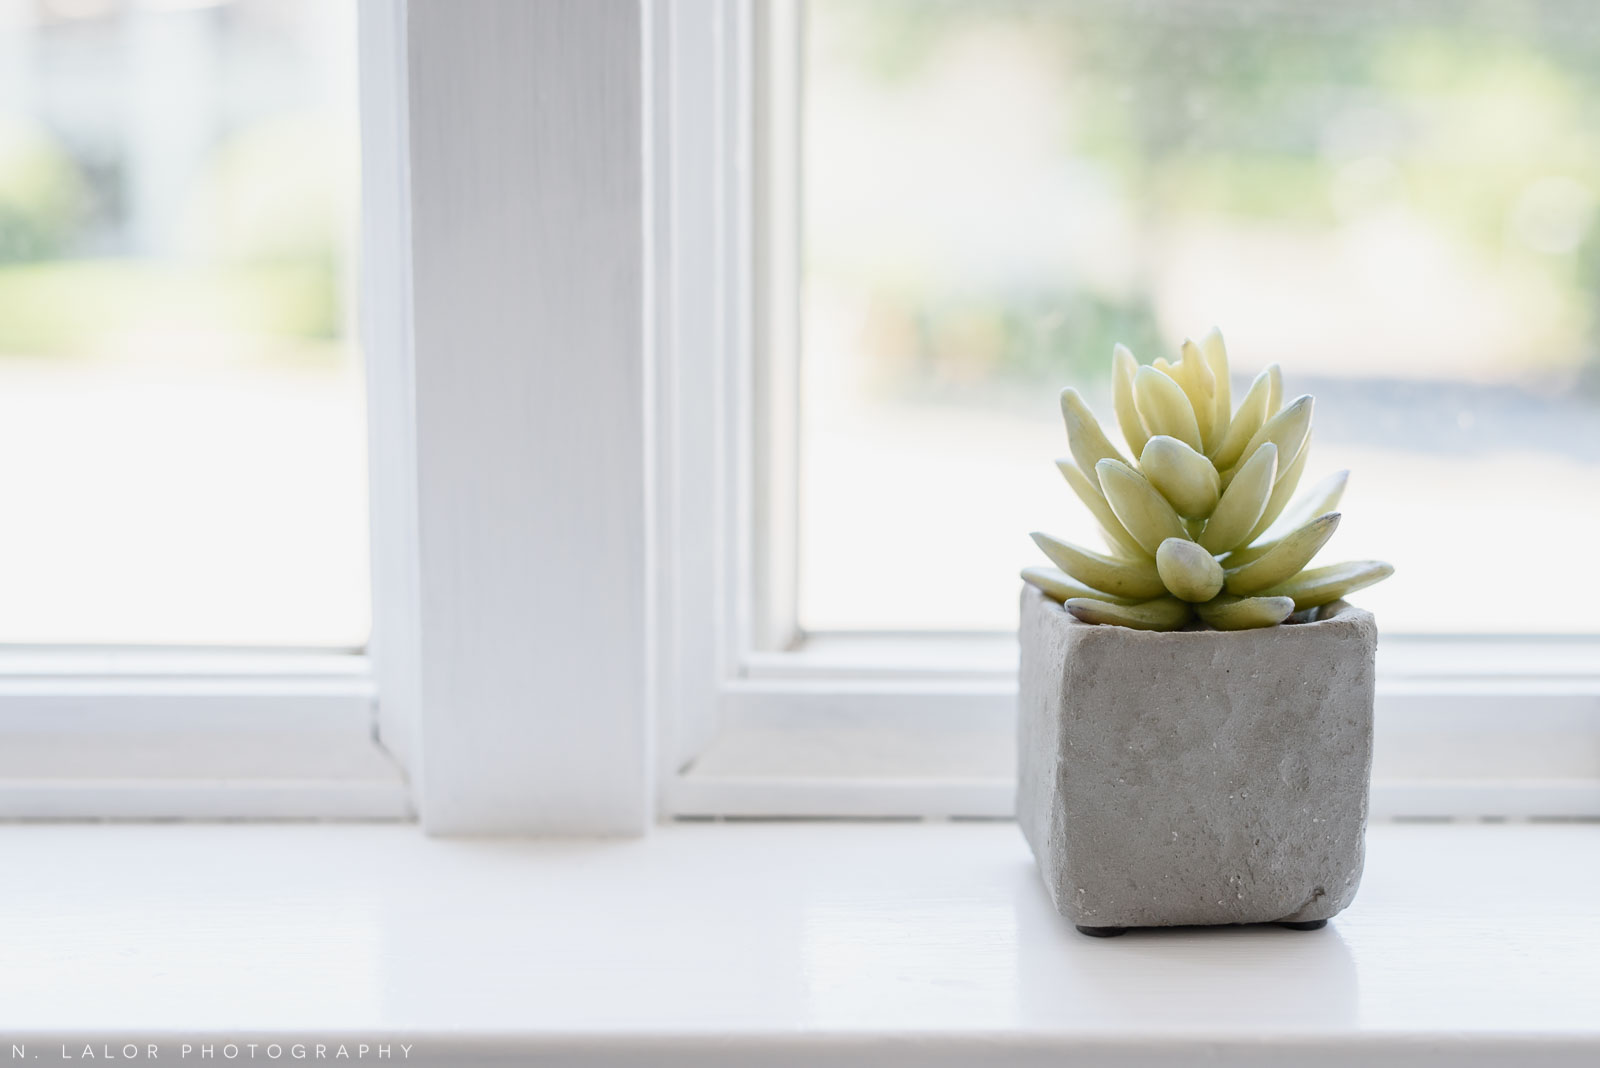 N. Lalor Photography Studio - a little plant on the windowsill.